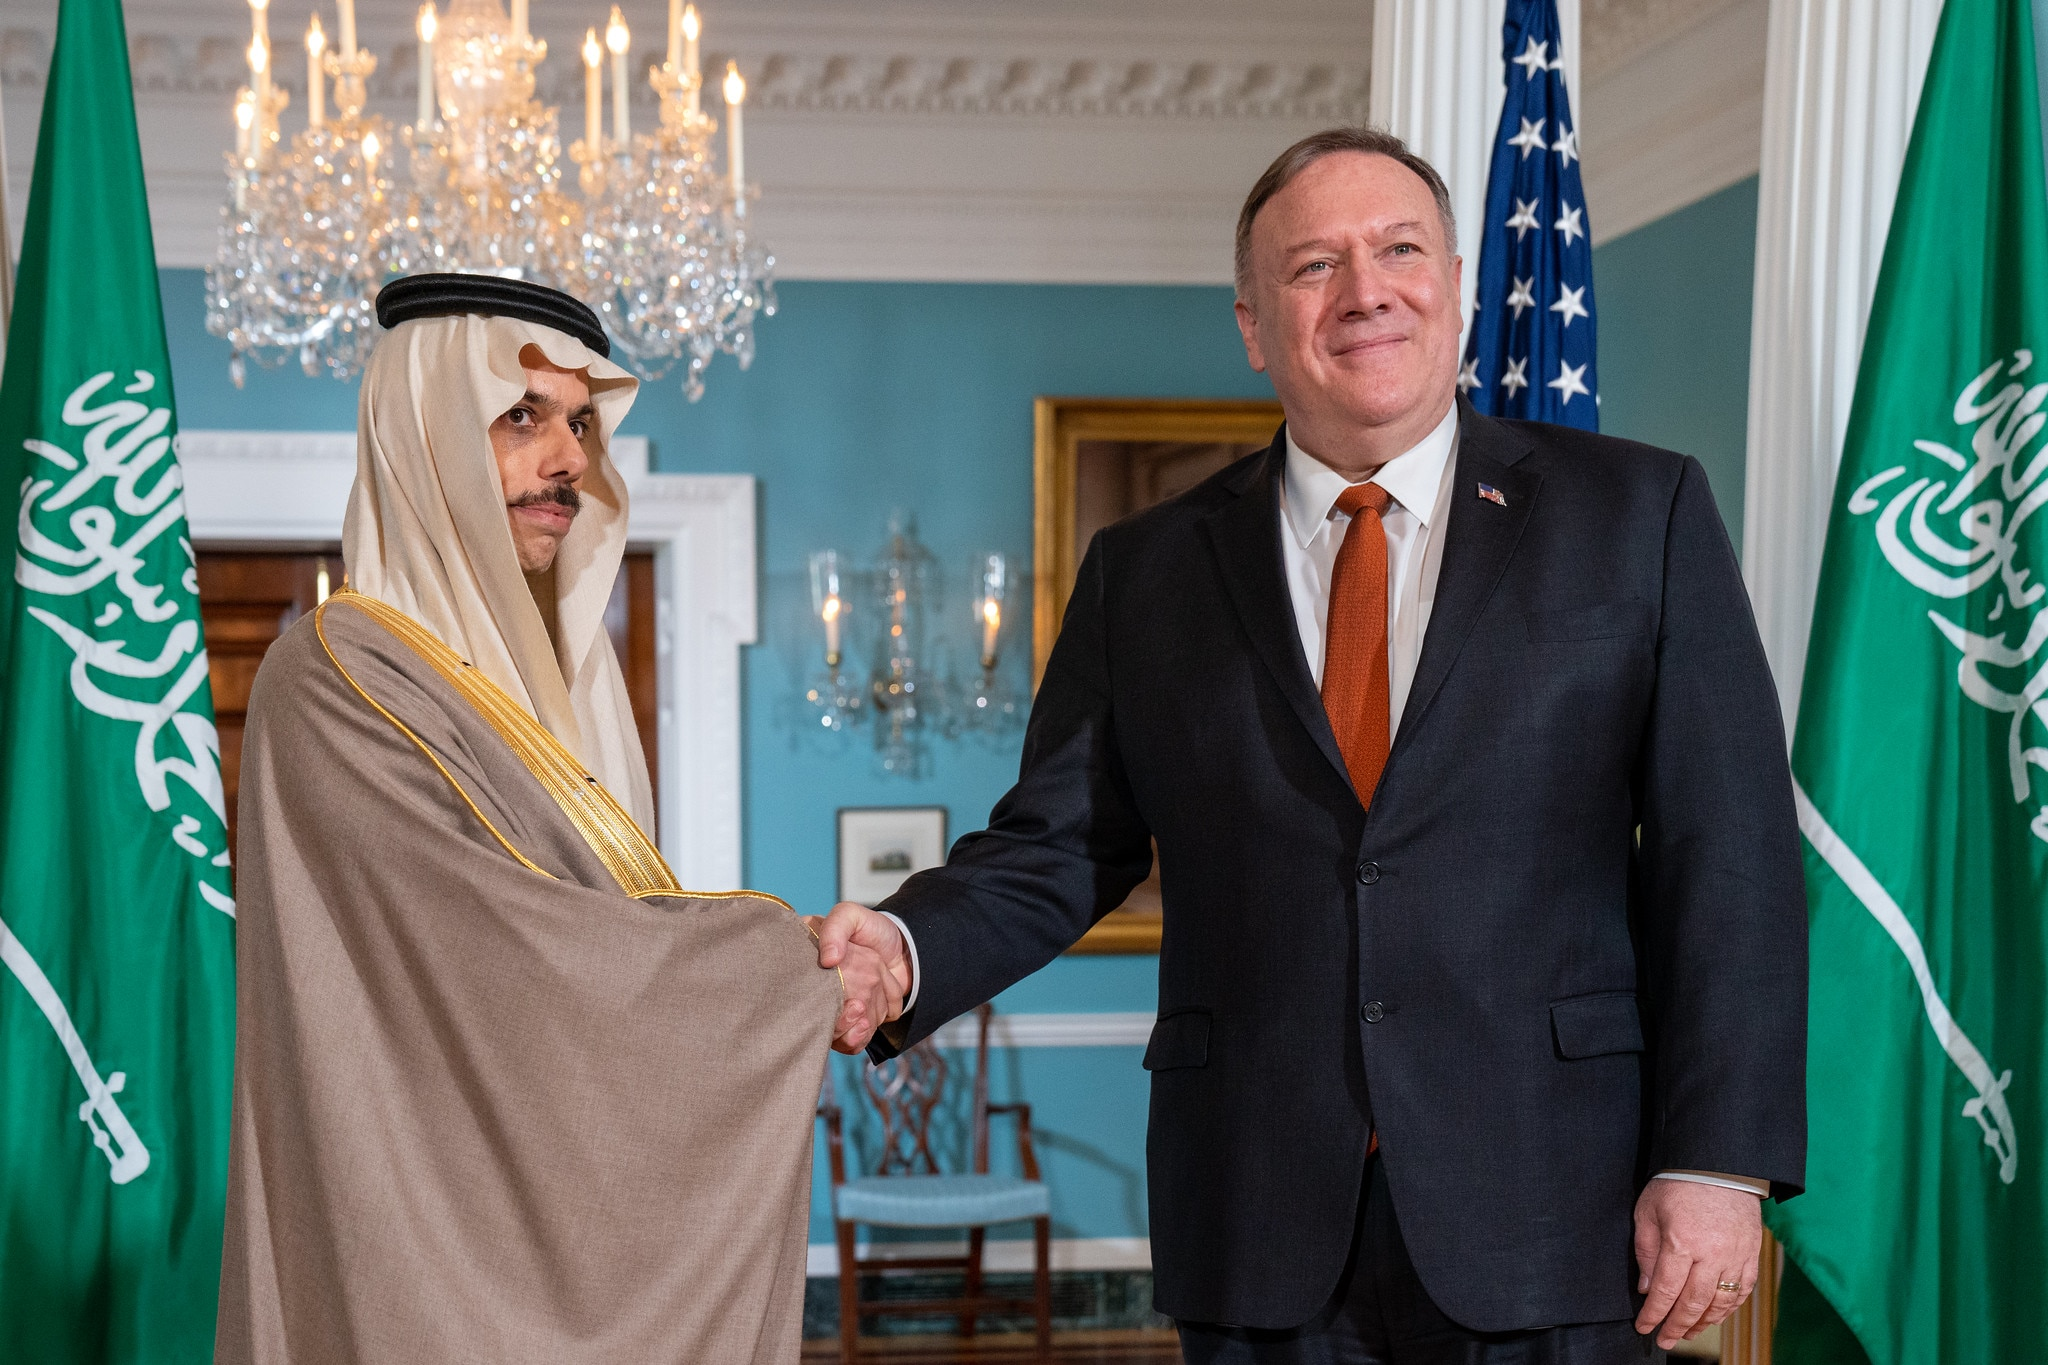 Secretary Michael R. Pompeo meets with His Royal Highness Prince Faisal bin Farhan Al Saud, Minister of Foreign Affairs of the Kingdom of Saudi Arabia, on February 12, 2020 in Washington, DC. [State Department photo by Ron Przysucha/ Public Domain]